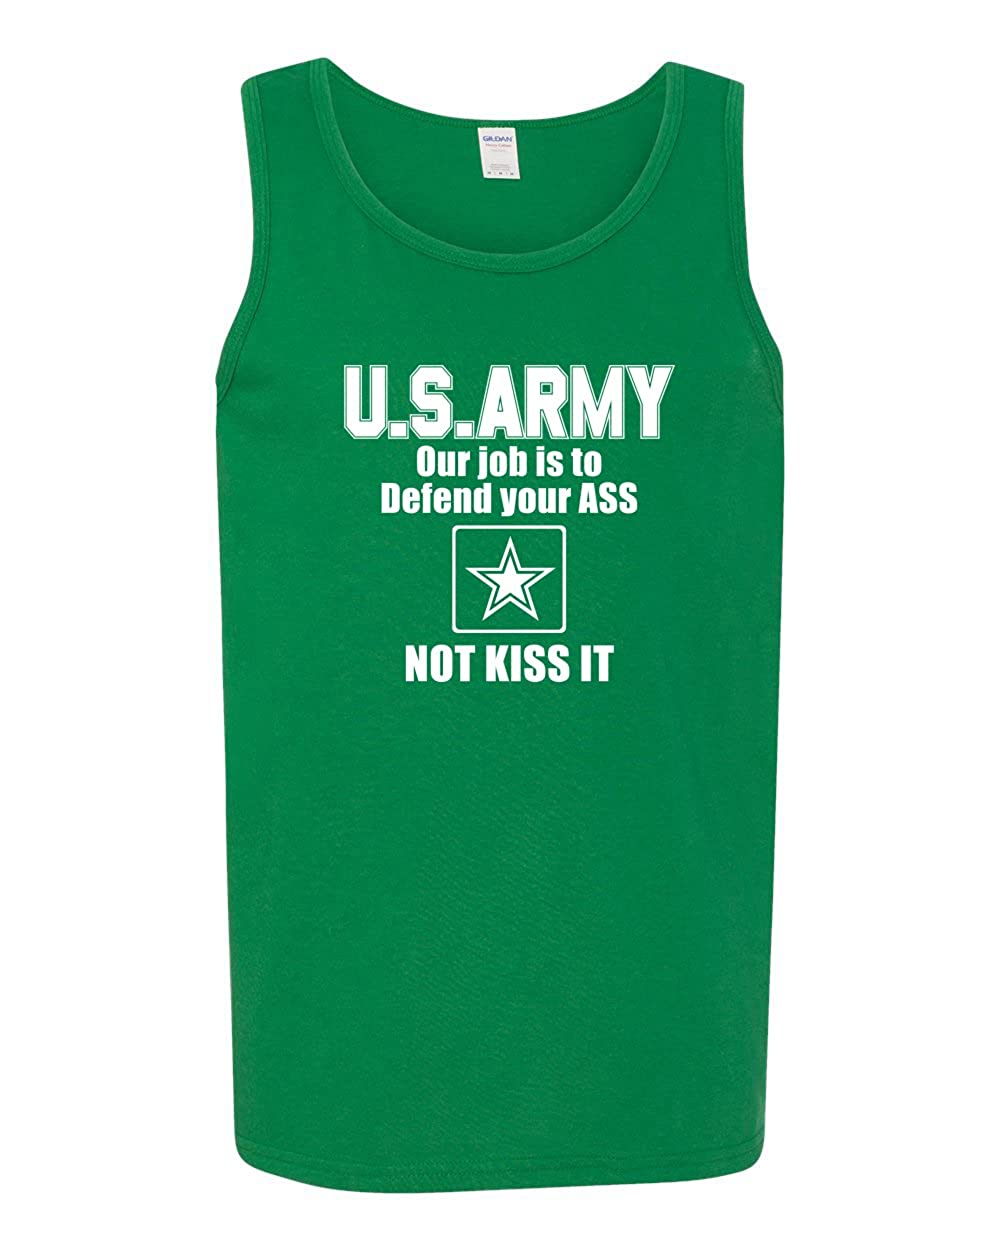 Mens Humor Fashion Graphic Tank Top Protect Your Ass Not Kiss It US Army